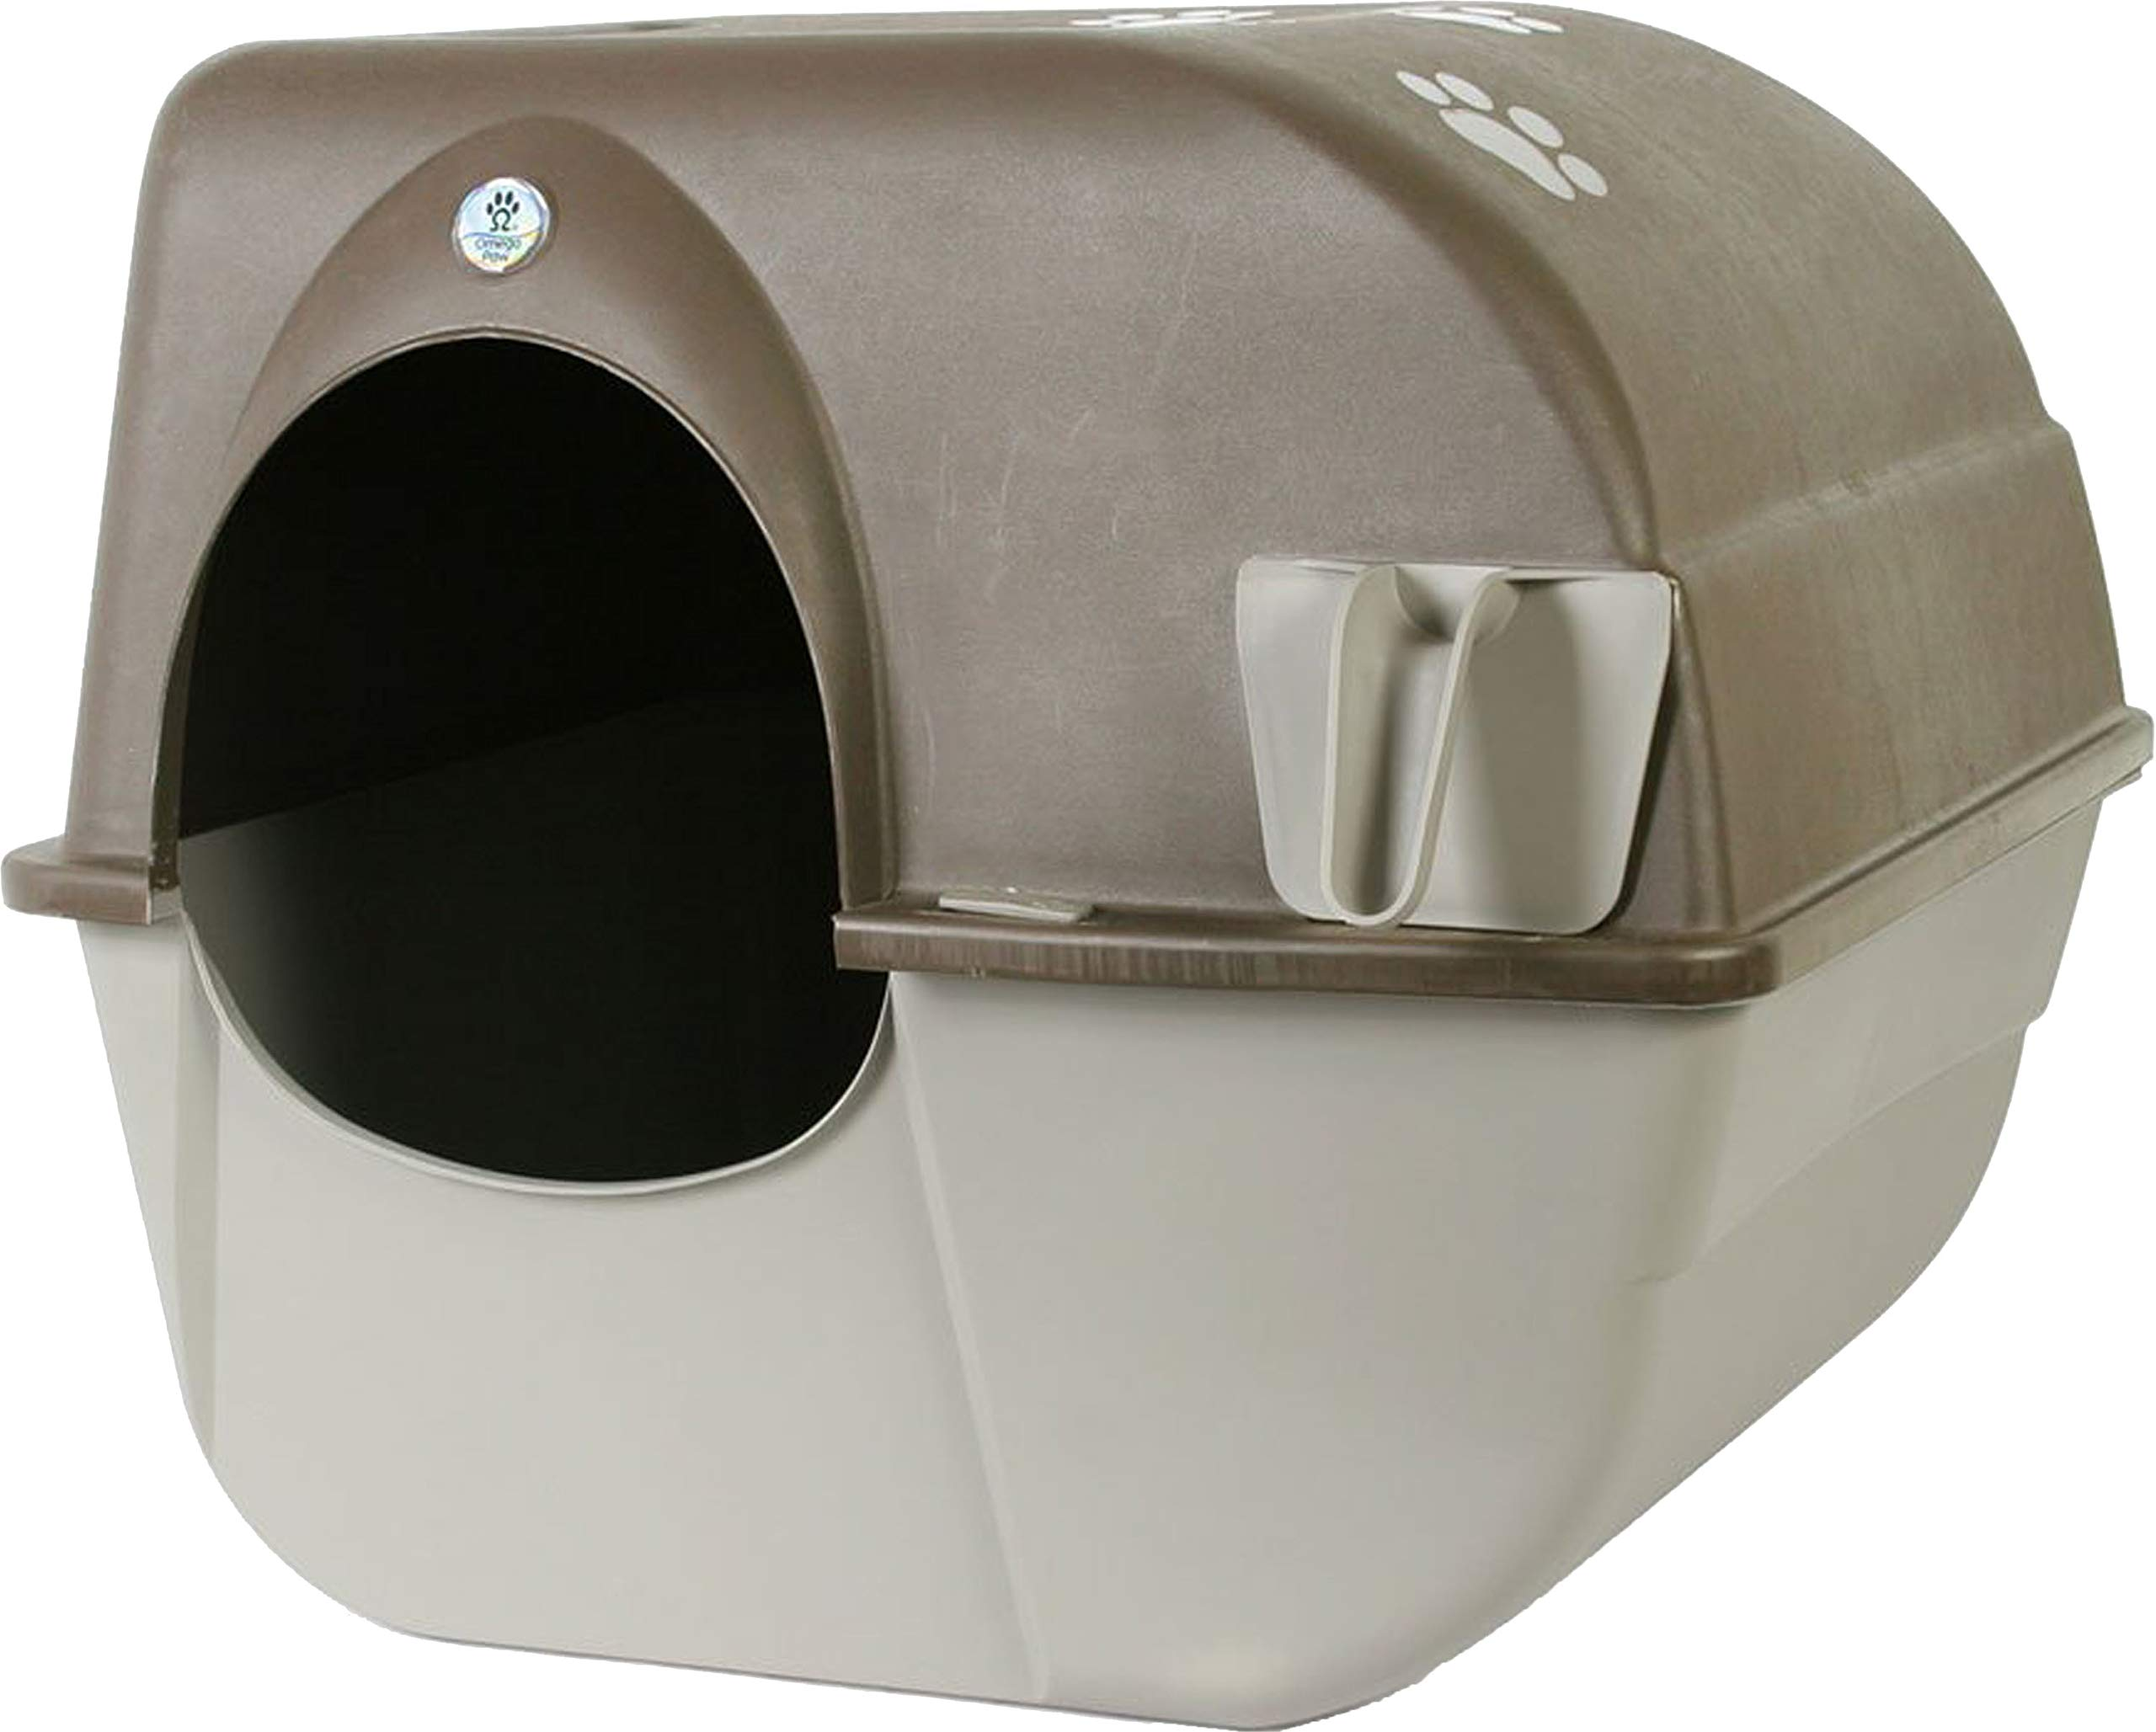 Omega Paw Products RA20 Self Cleaning Litter Box (Large, 19-1/2 Inch W x 22 Inch D x 20 Inch H) by Omega Paw Products